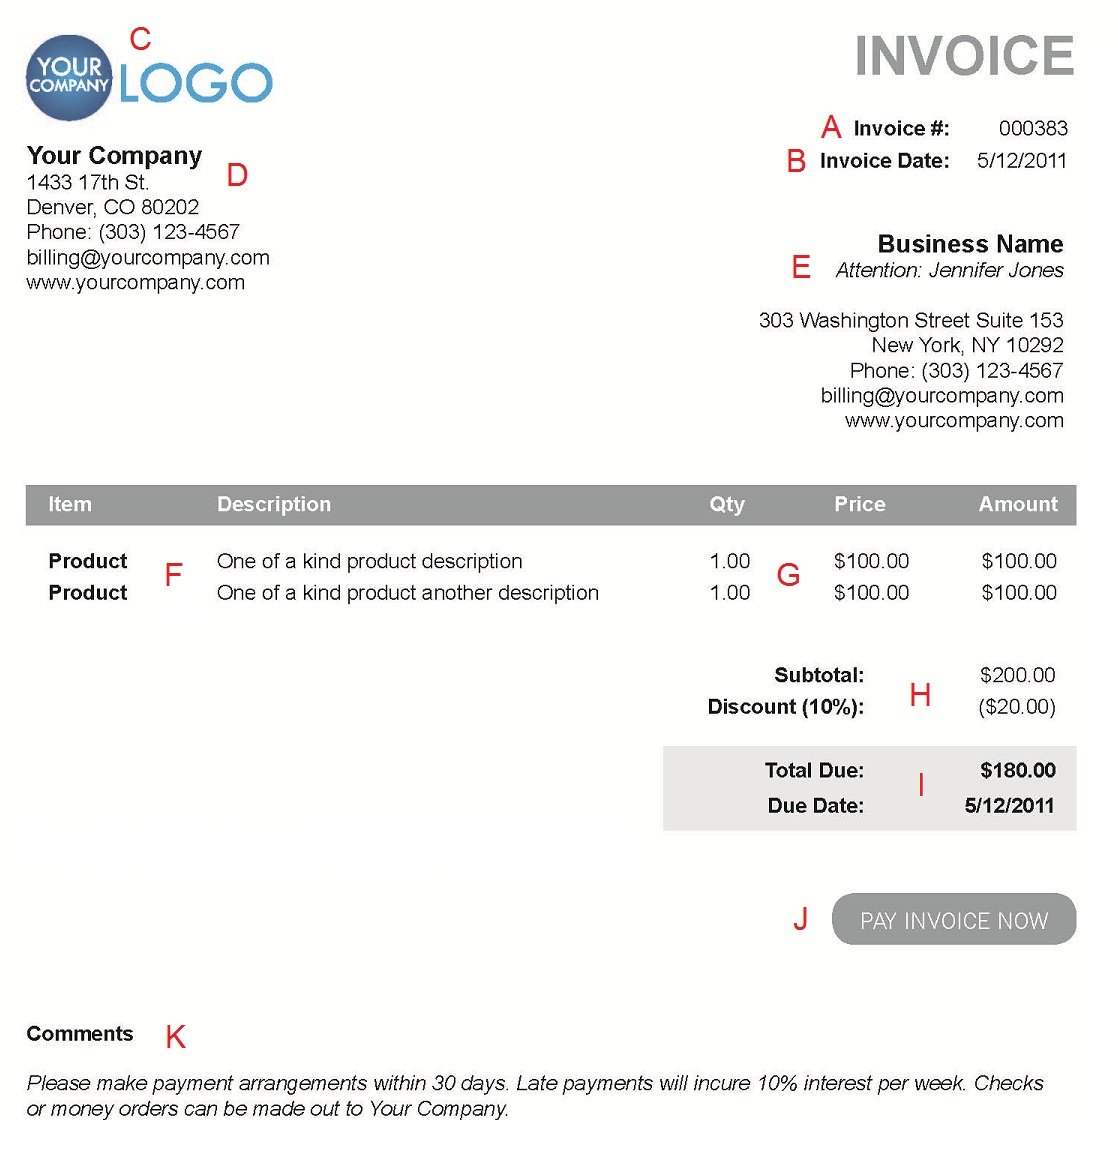 Ebitus  Pleasant The  Different Sections Of An Electronic Payment Invoice With Interesting A  With Captivating Invoice Request Form Template Also Abn Invoice Template In Addition Sample Invoice Template Free And Invoicing Procedure As Well As Send A Invoice Additionally Commercial Invoice Doc From Paysimplecom With Ebitus  Interesting The  Different Sections Of An Electronic Payment Invoice With Captivating A  And Pleasant Invoice Request Form Template Also Abn Invoice Template In Addition Sample Invoice Template Free From Paysimplecom